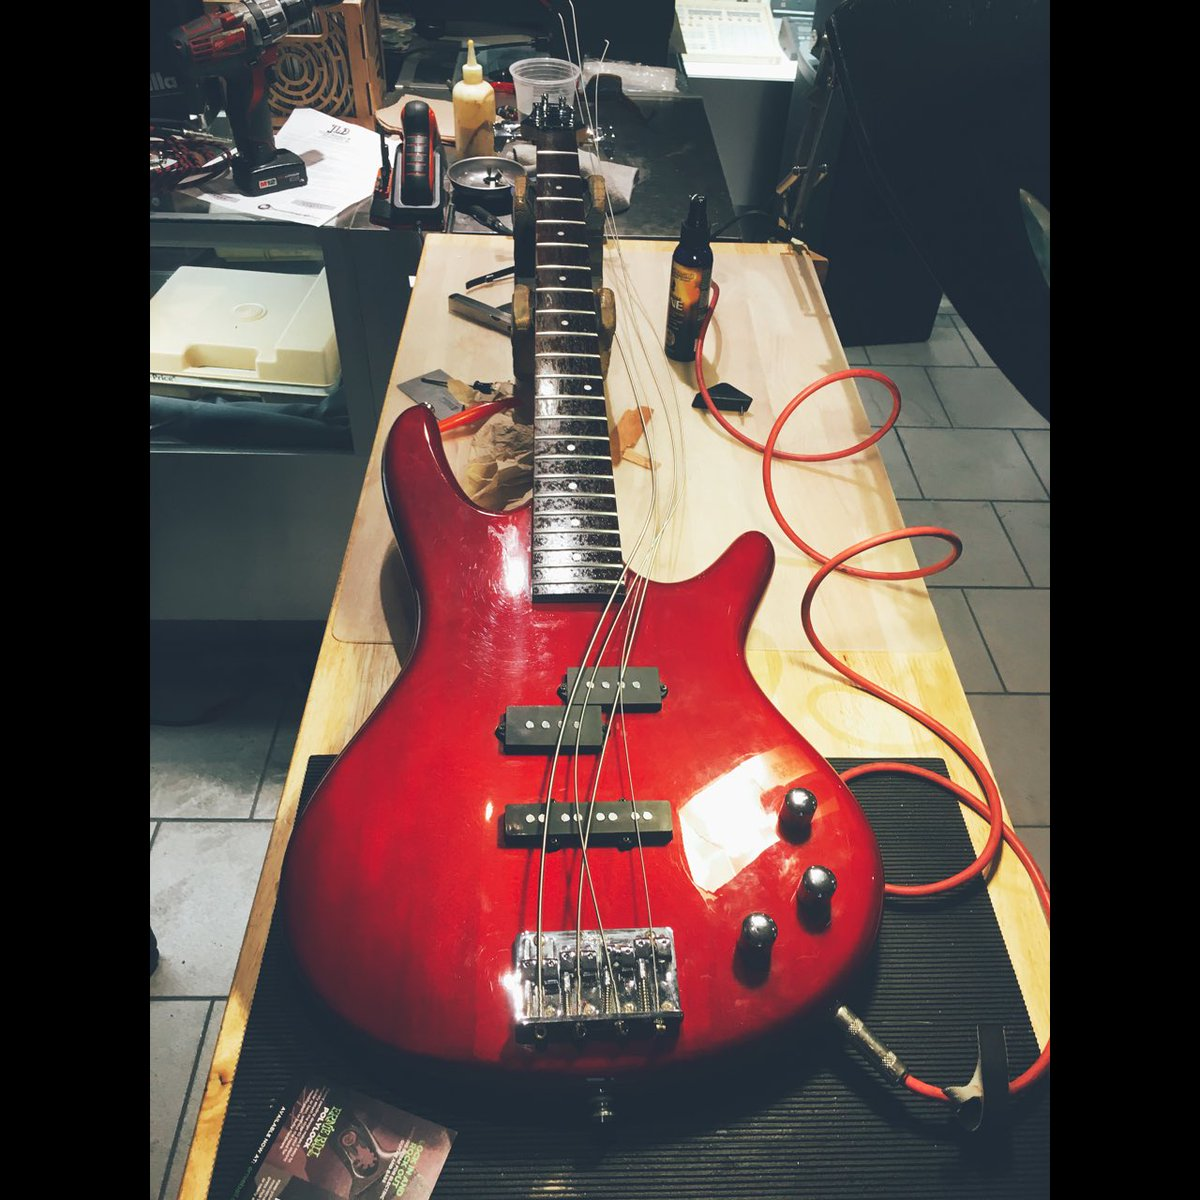 Ibanez GIO 4string in for a setup #jessedeandesigns #guitartech #stewmac #luthier #ibanez<br>http://pic.twitter.com/wWcYxyyqA3